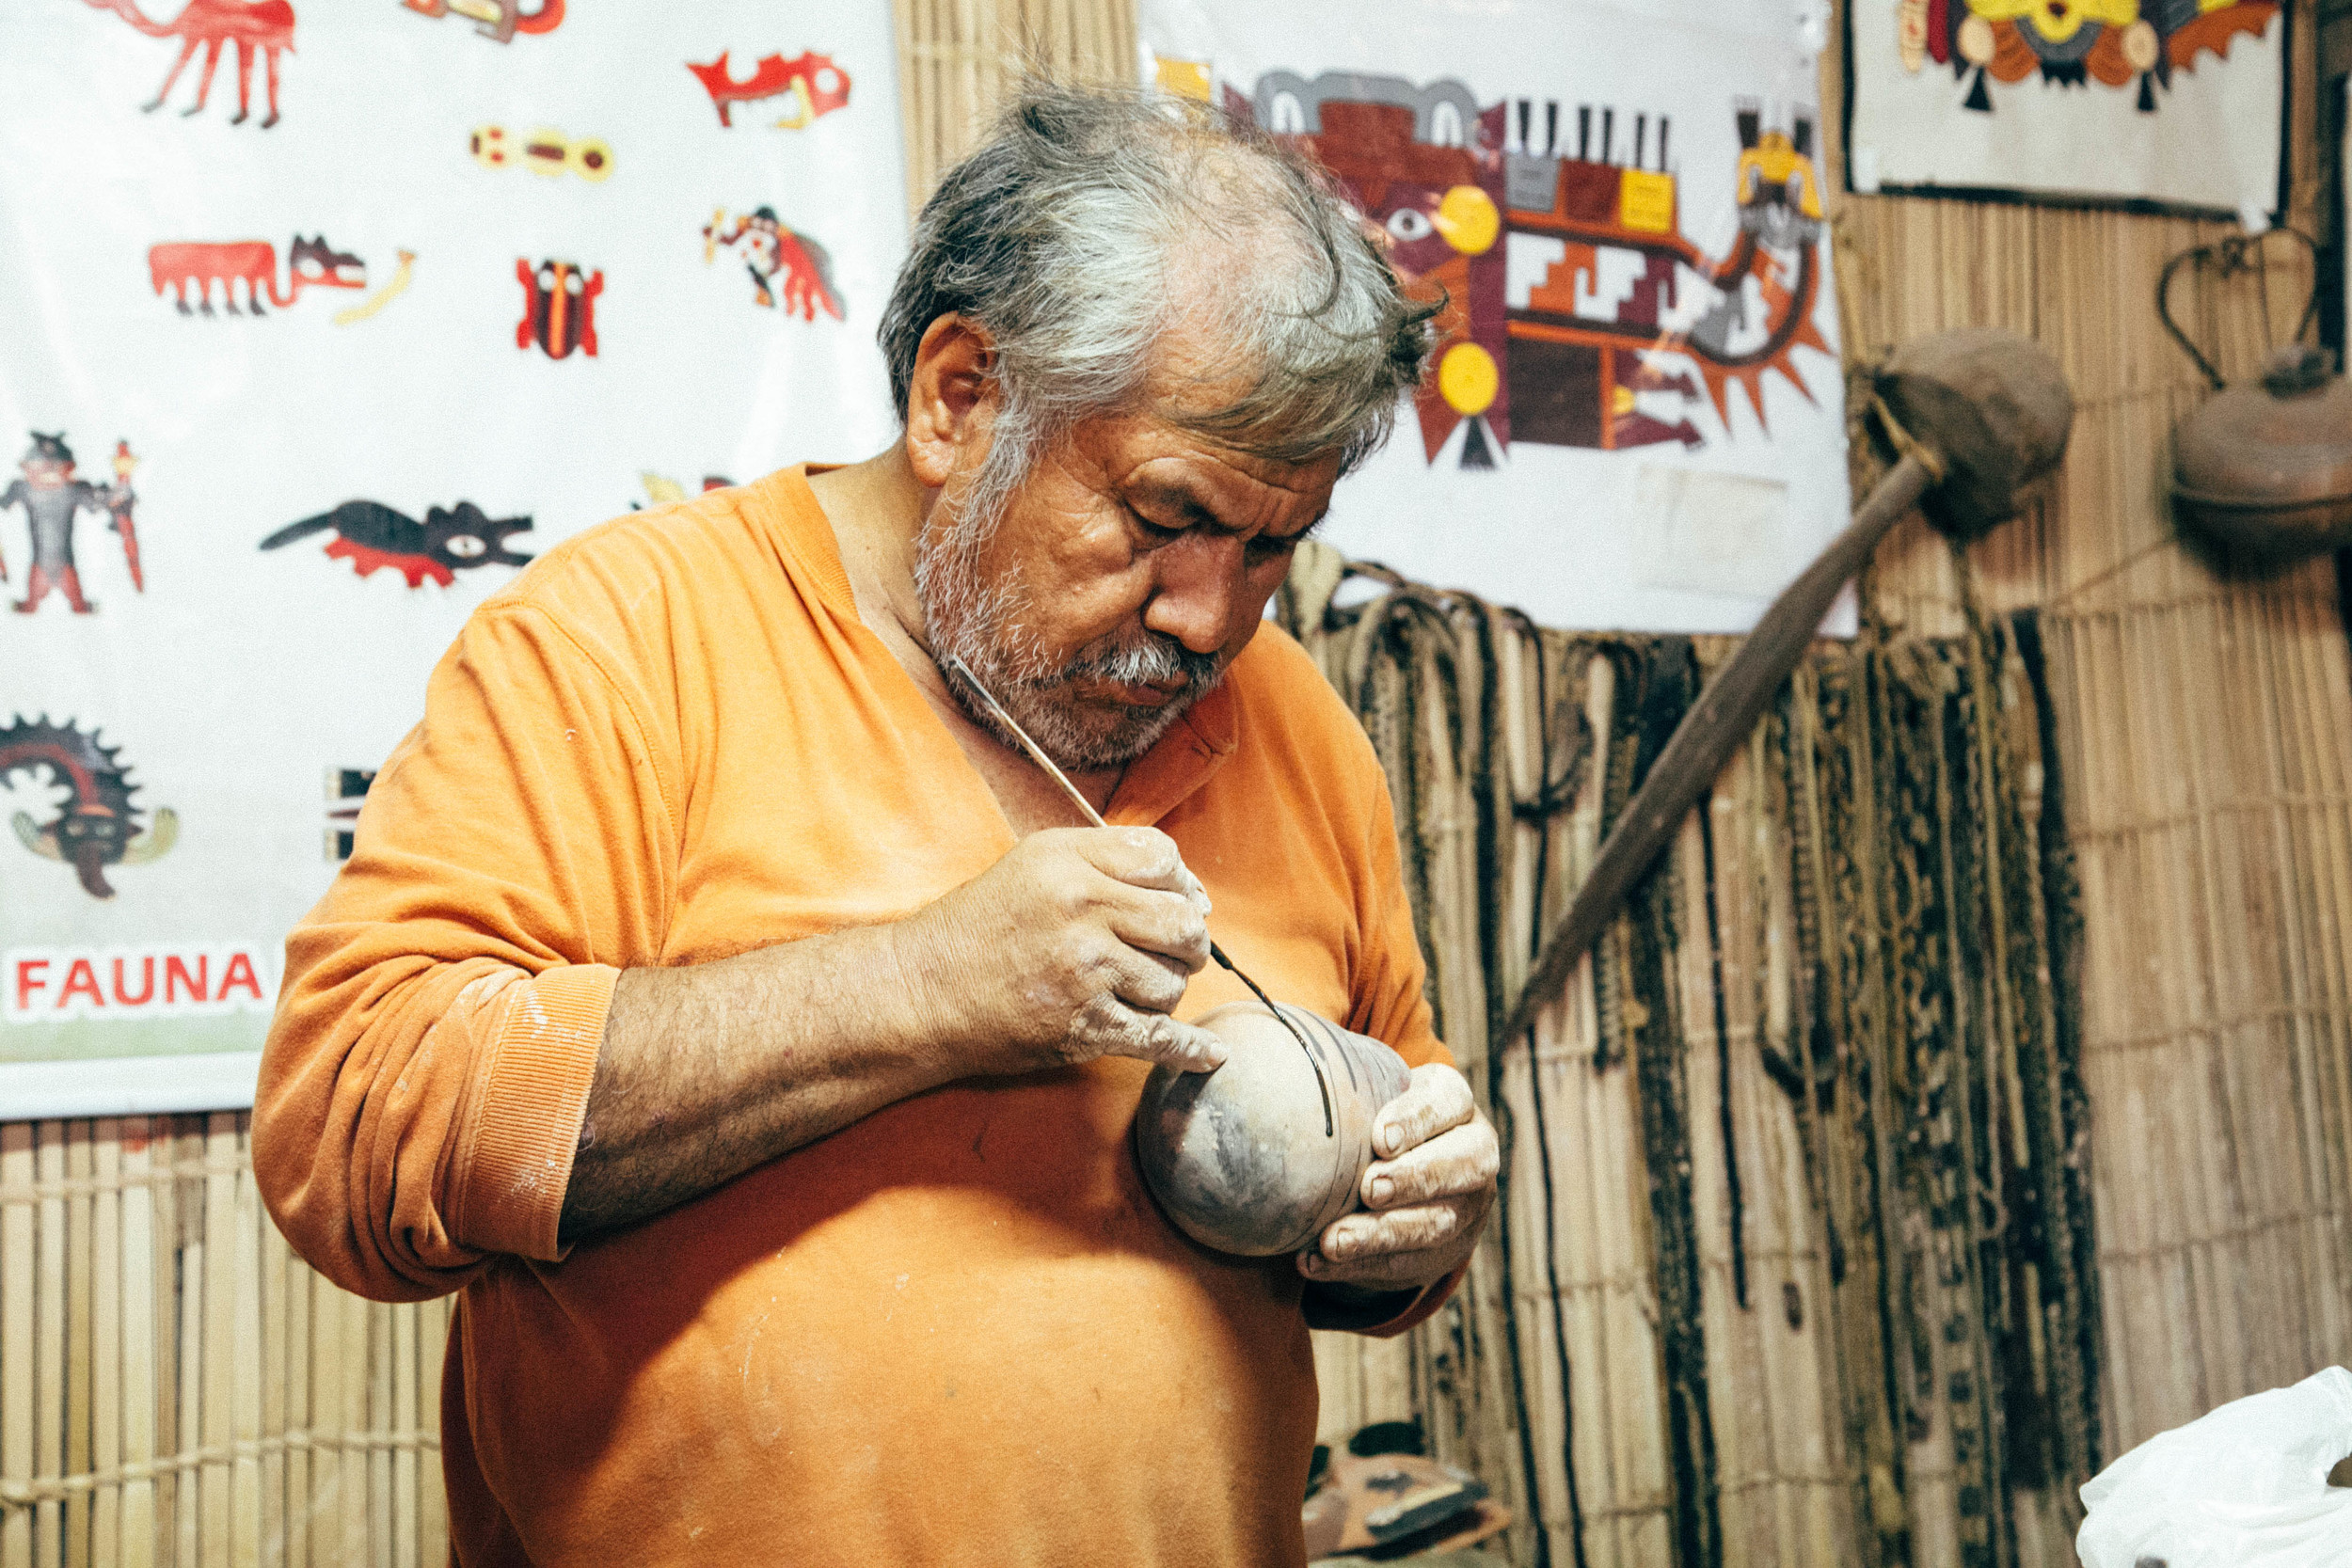 In this photo, he's showing us how he paints the designs on the pot.